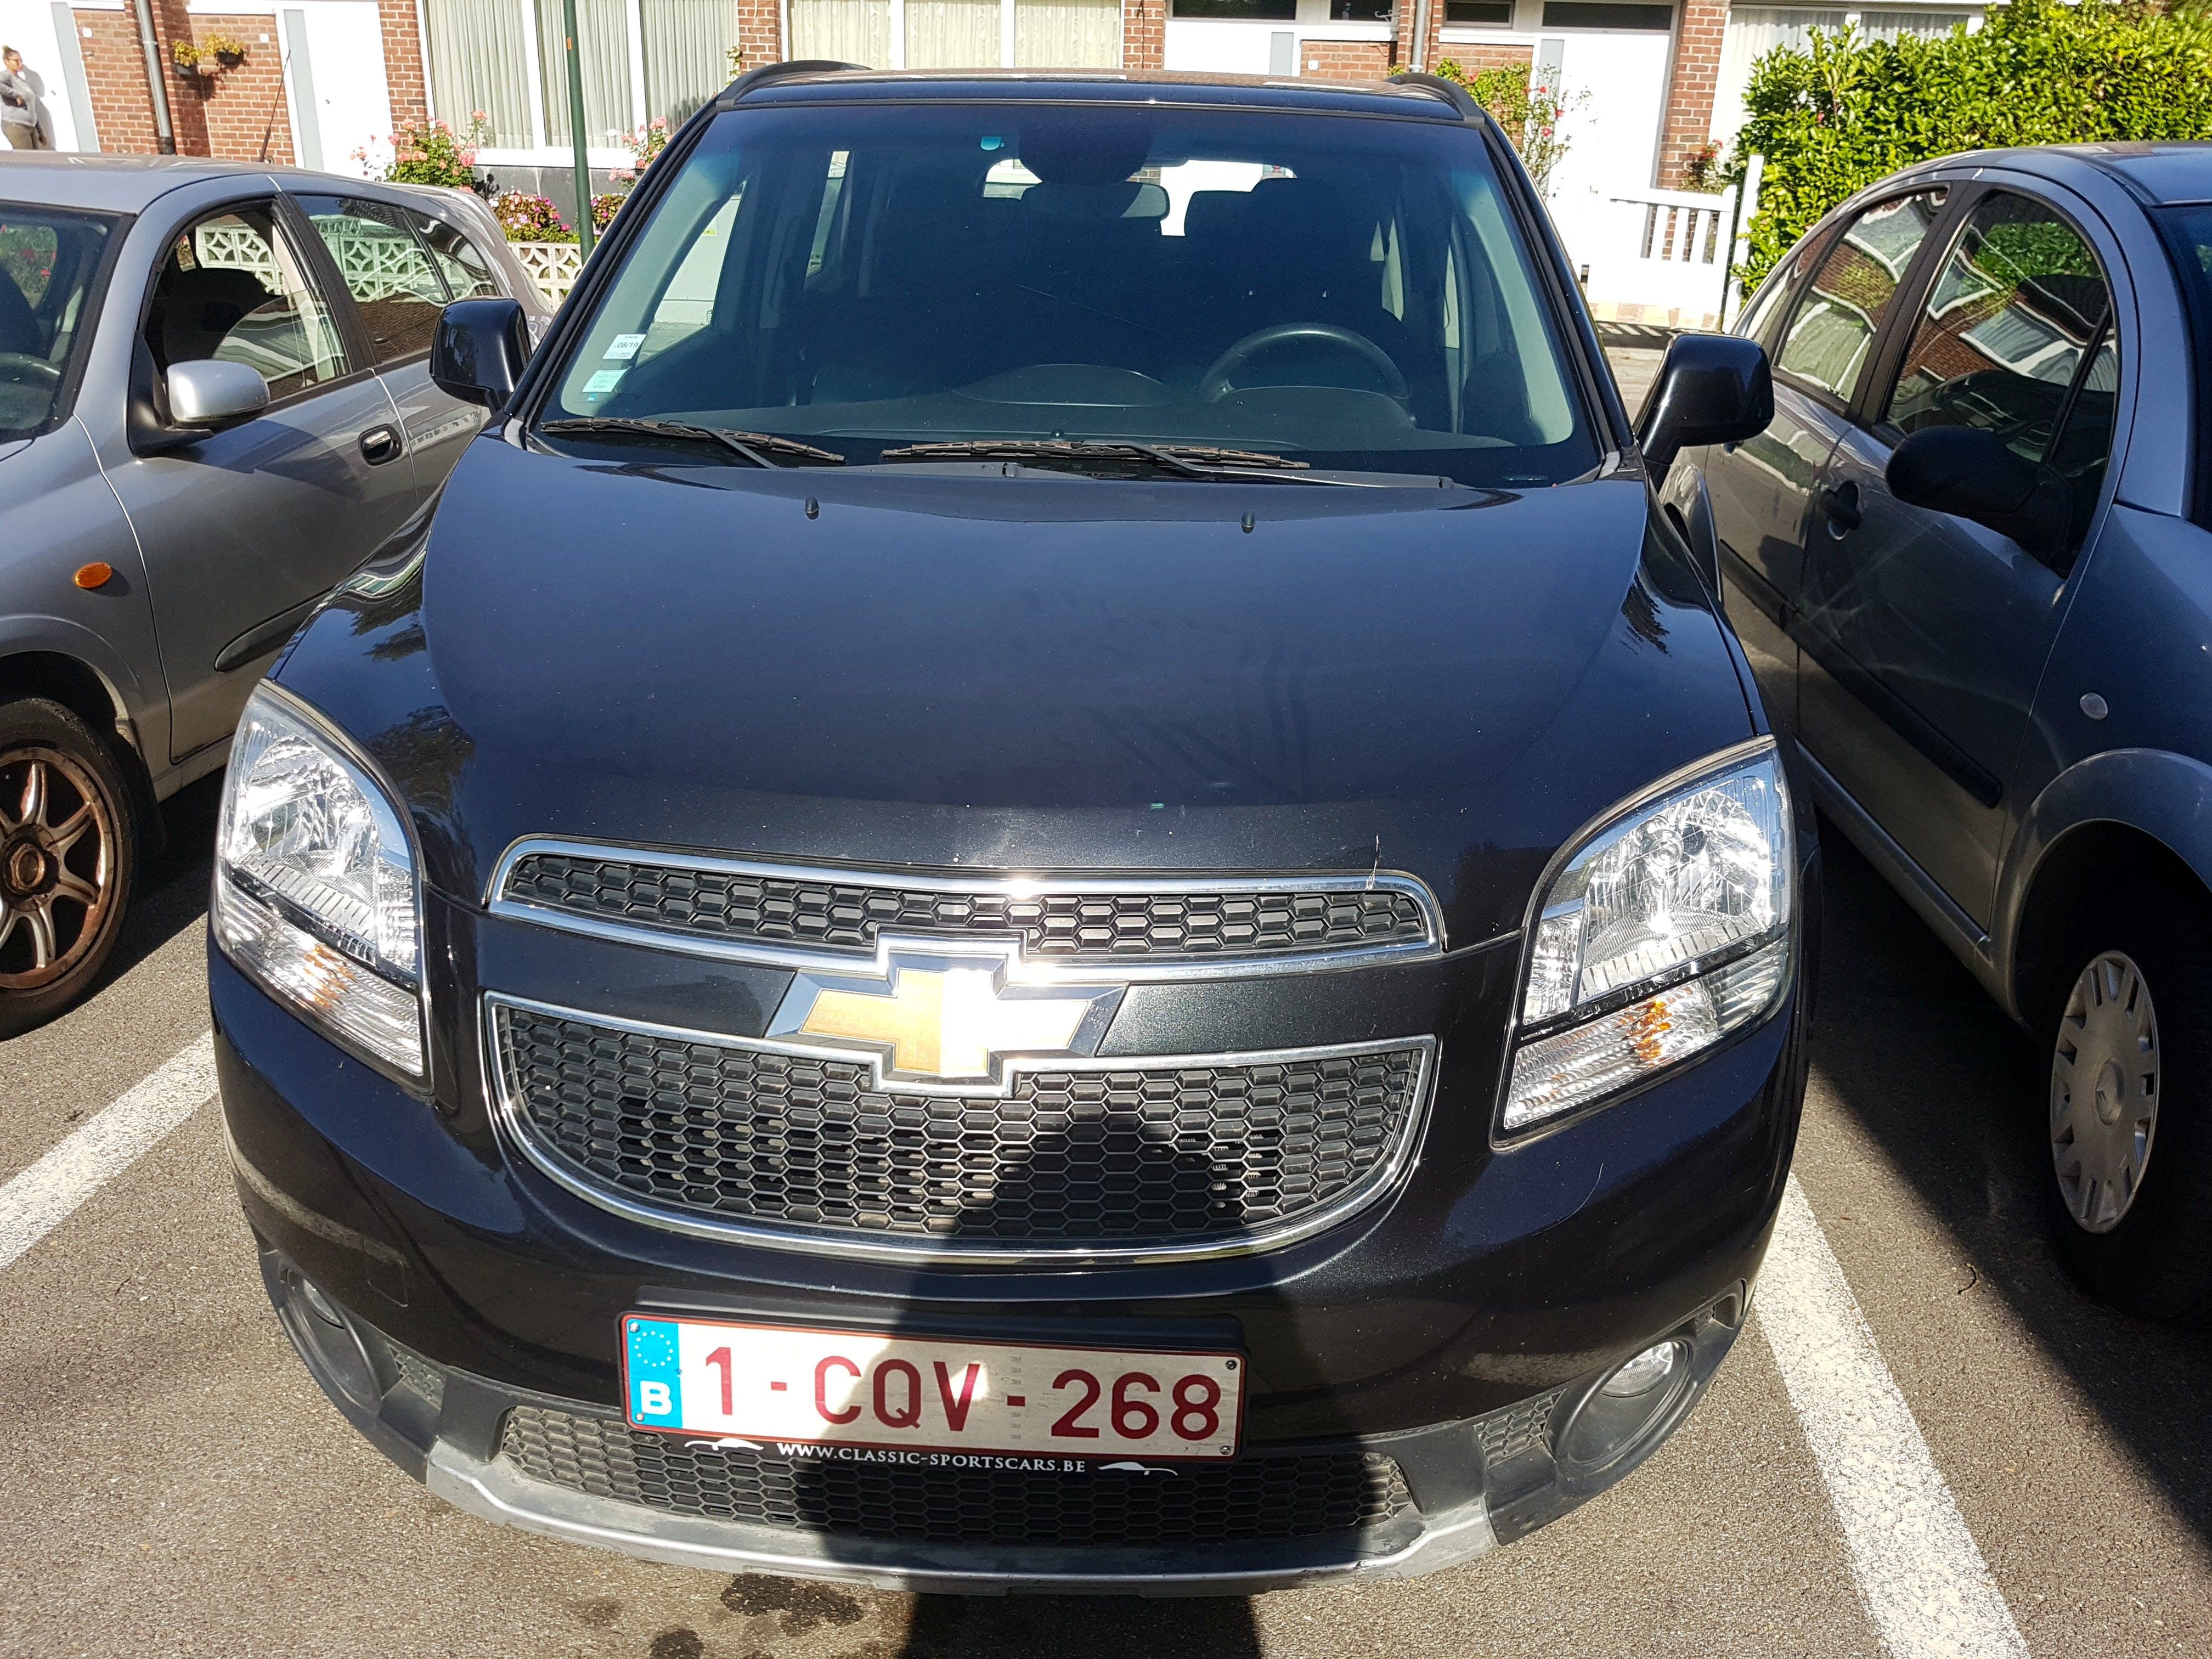 Chevrolet Orlando 1.9Hdi, 2016, Diesel, 7 places